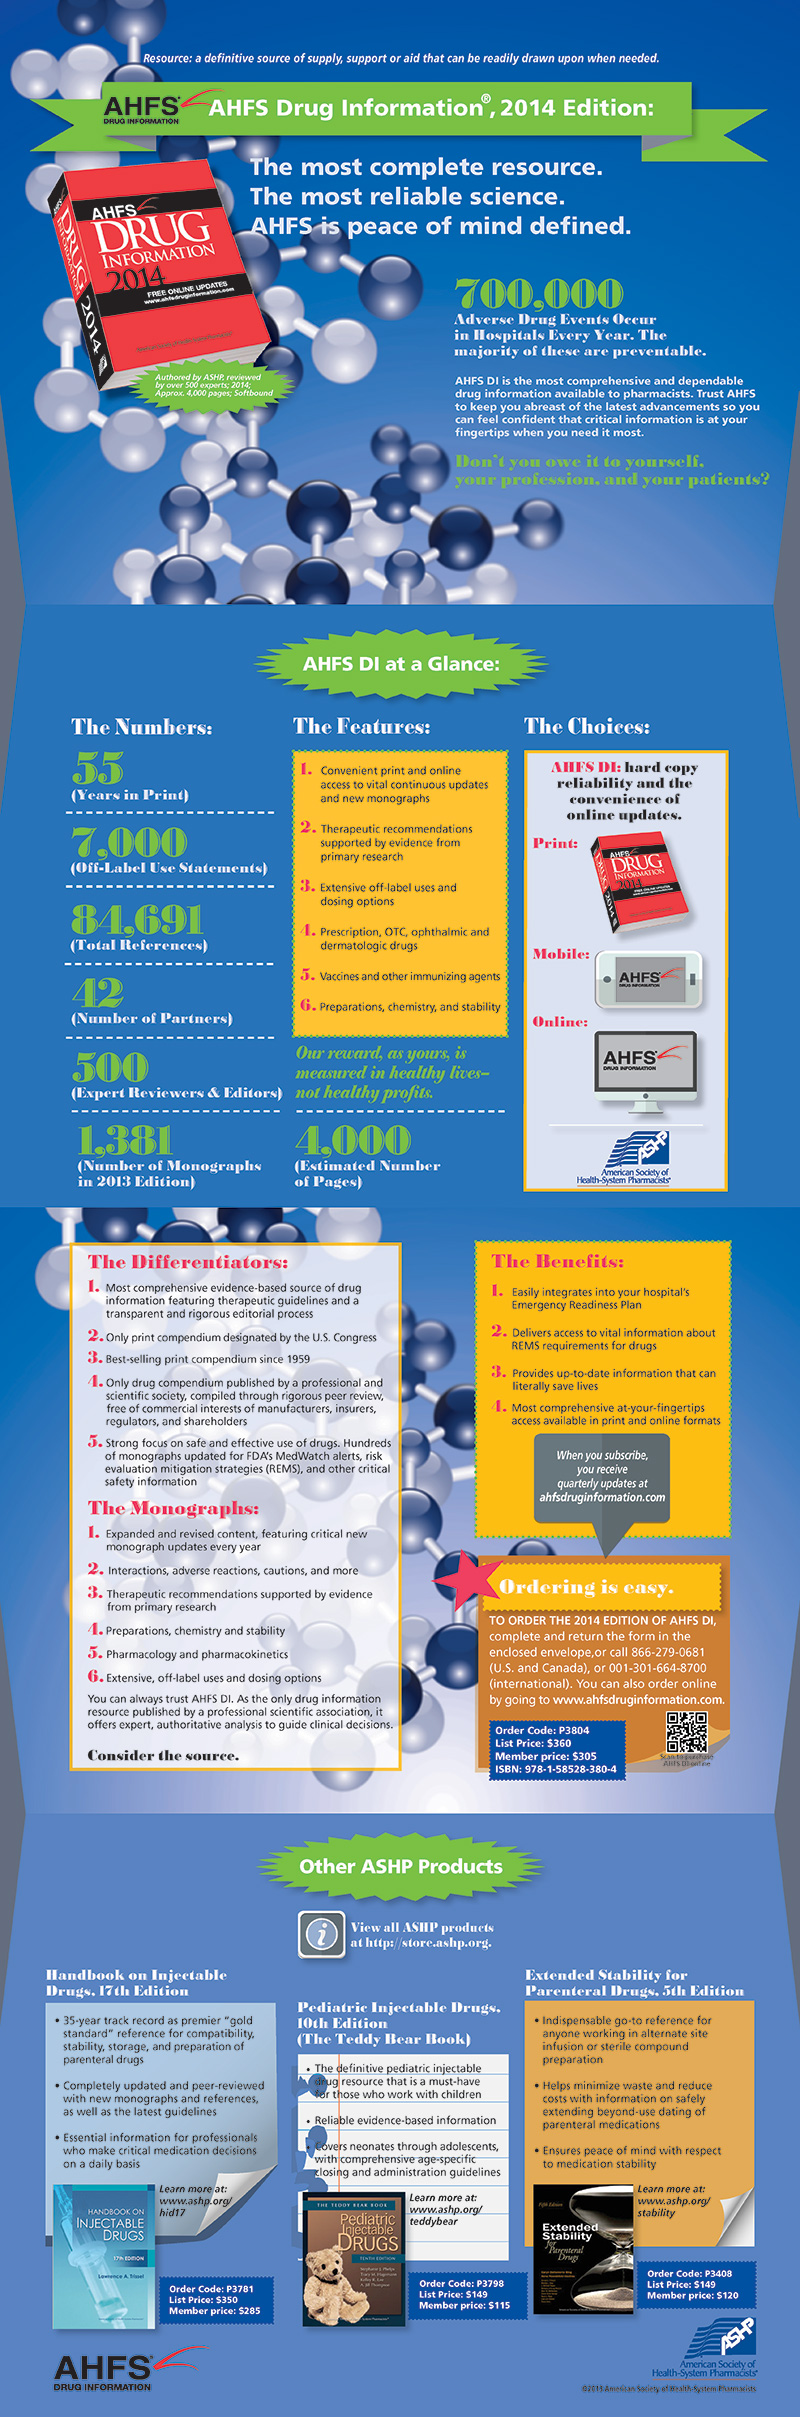 AHFS 2014 Infographic